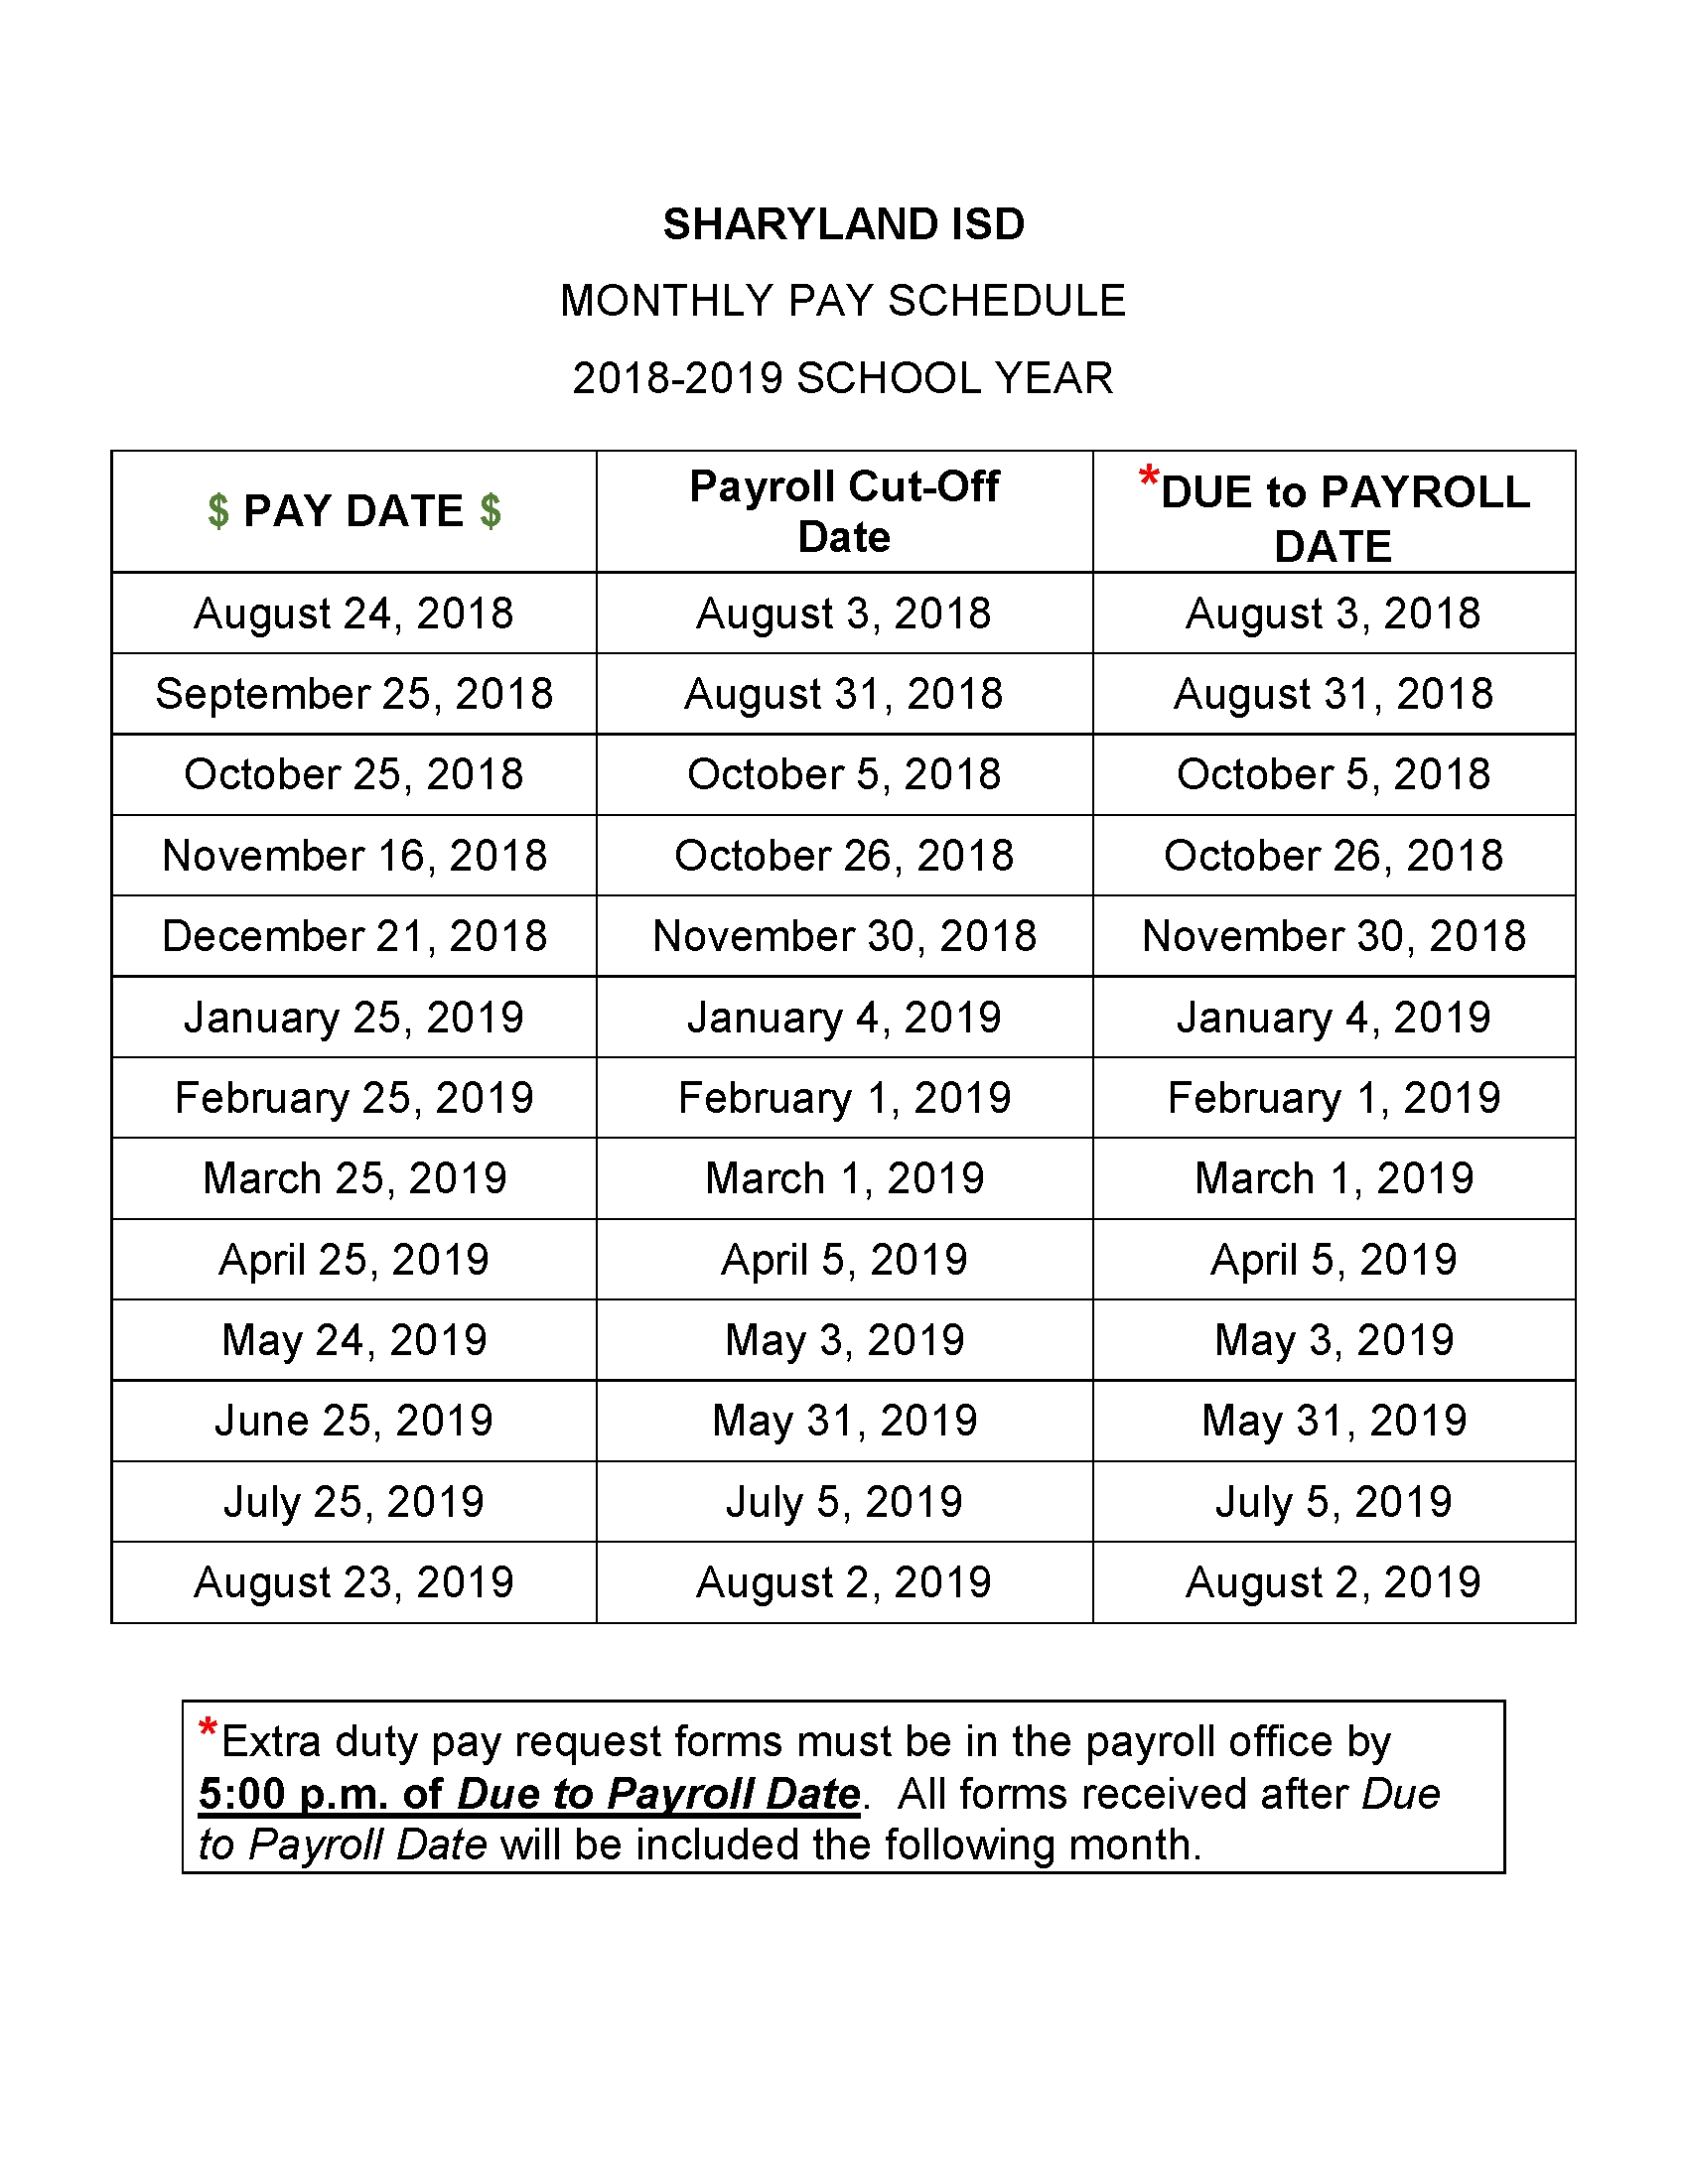 Monthly Pay Schedule - Sharyland Isd regarding Calendar Of Biweekly Pay Dates